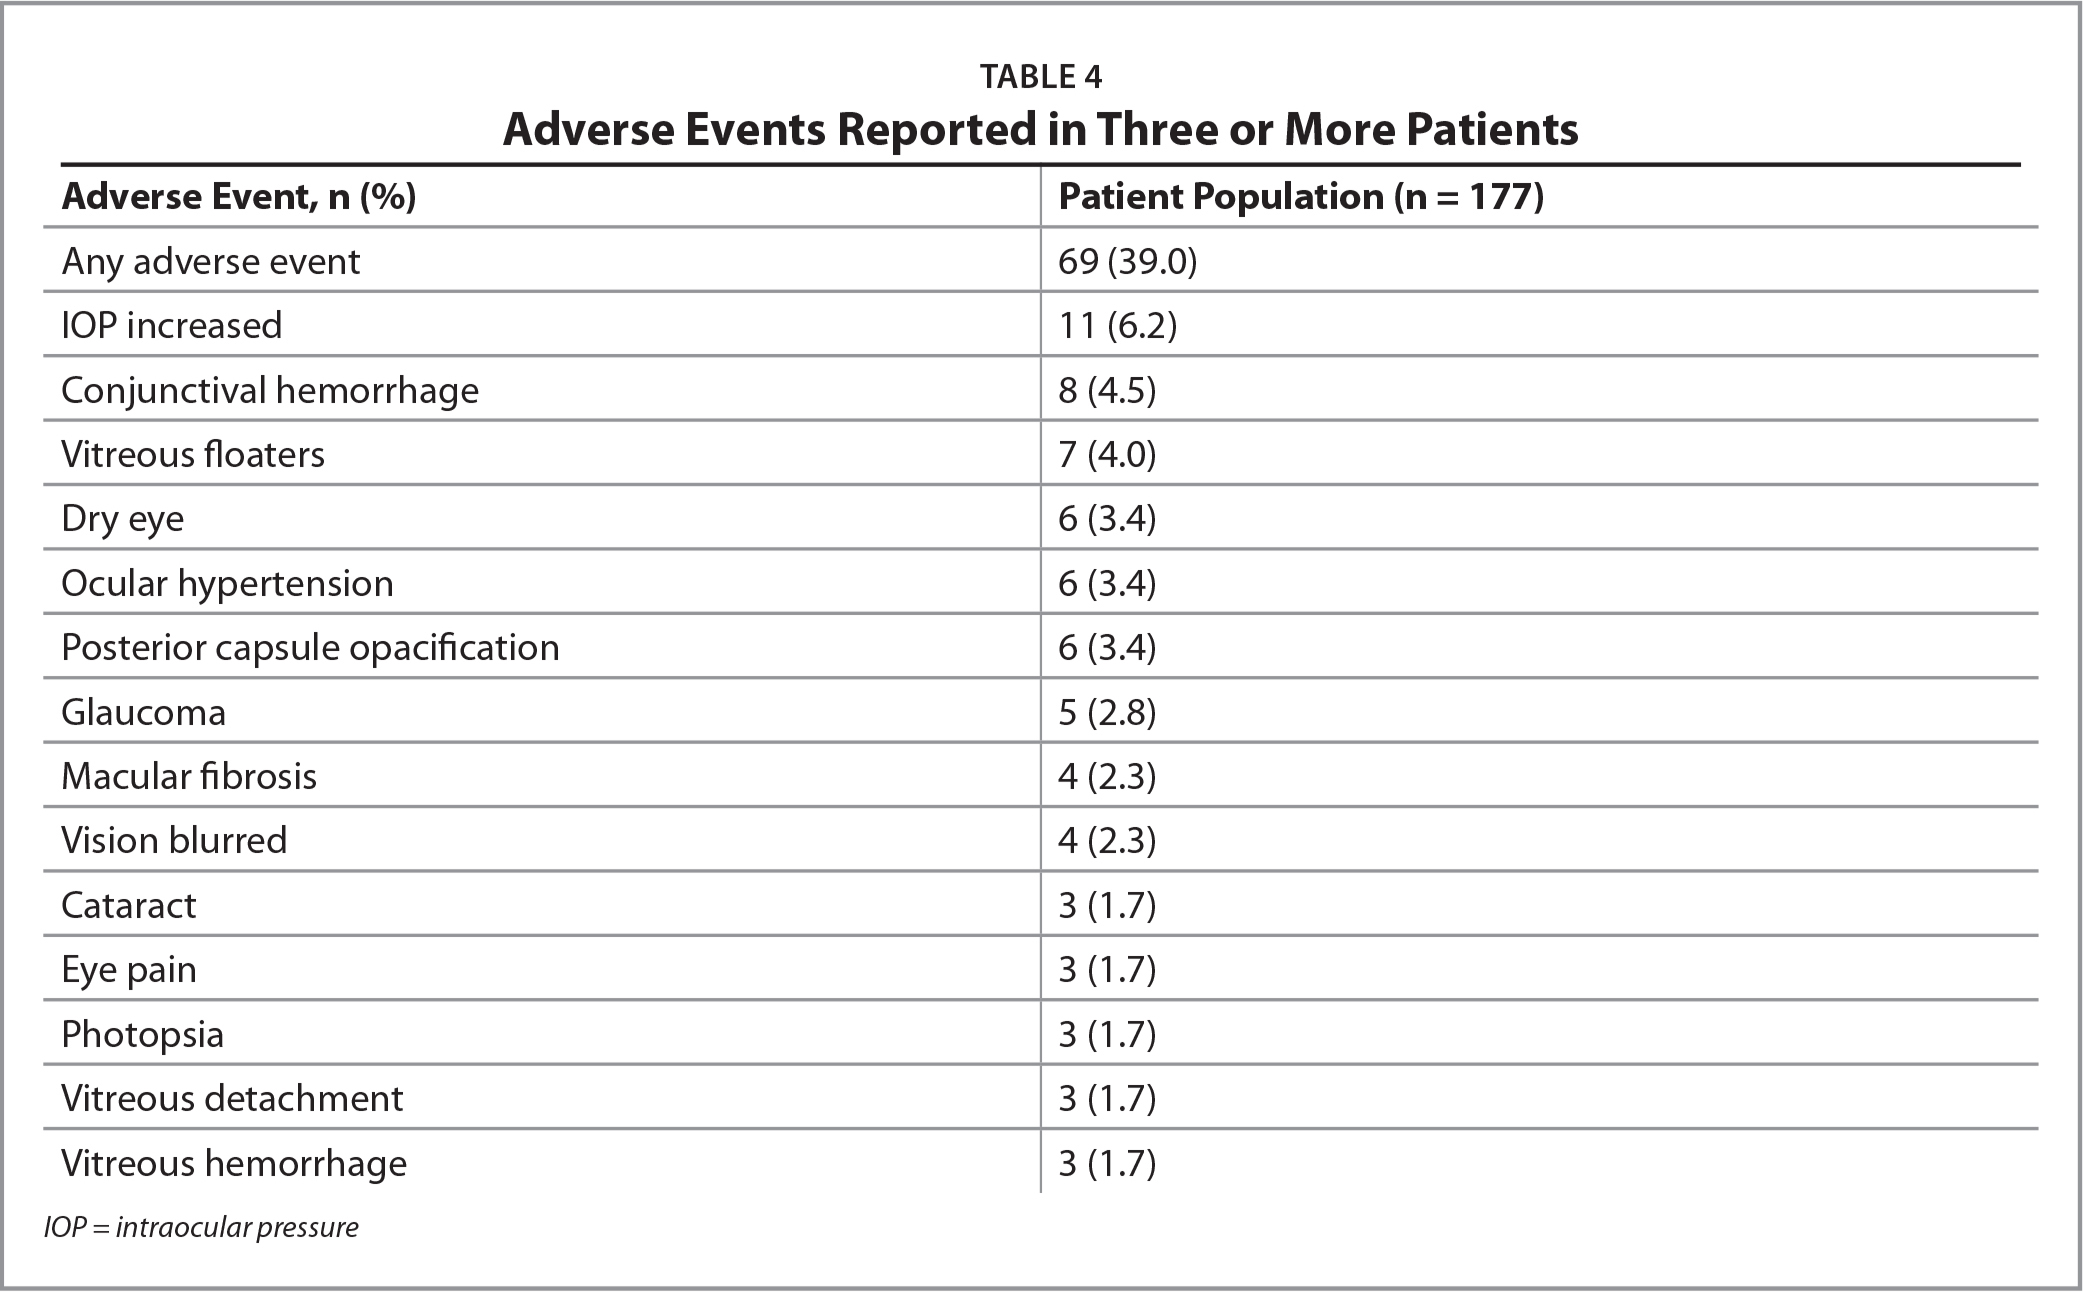 Adverse Events Reported in Three or More Patients